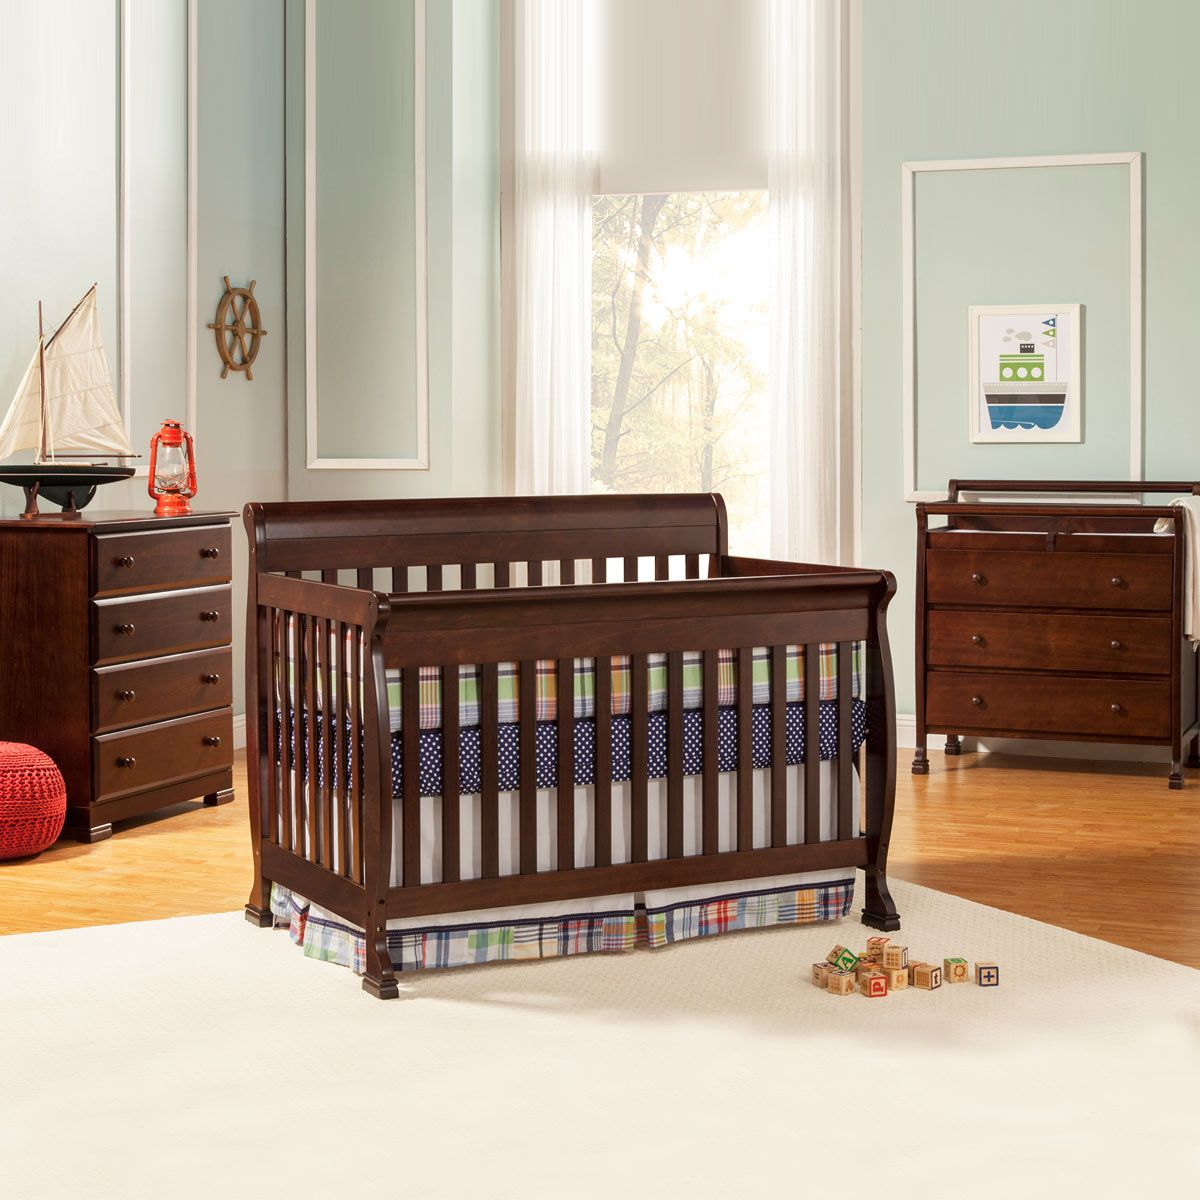 Merveilleux Baby Furniture Sets Espresso   Interior Paint Color Ideas Check More At  Http://